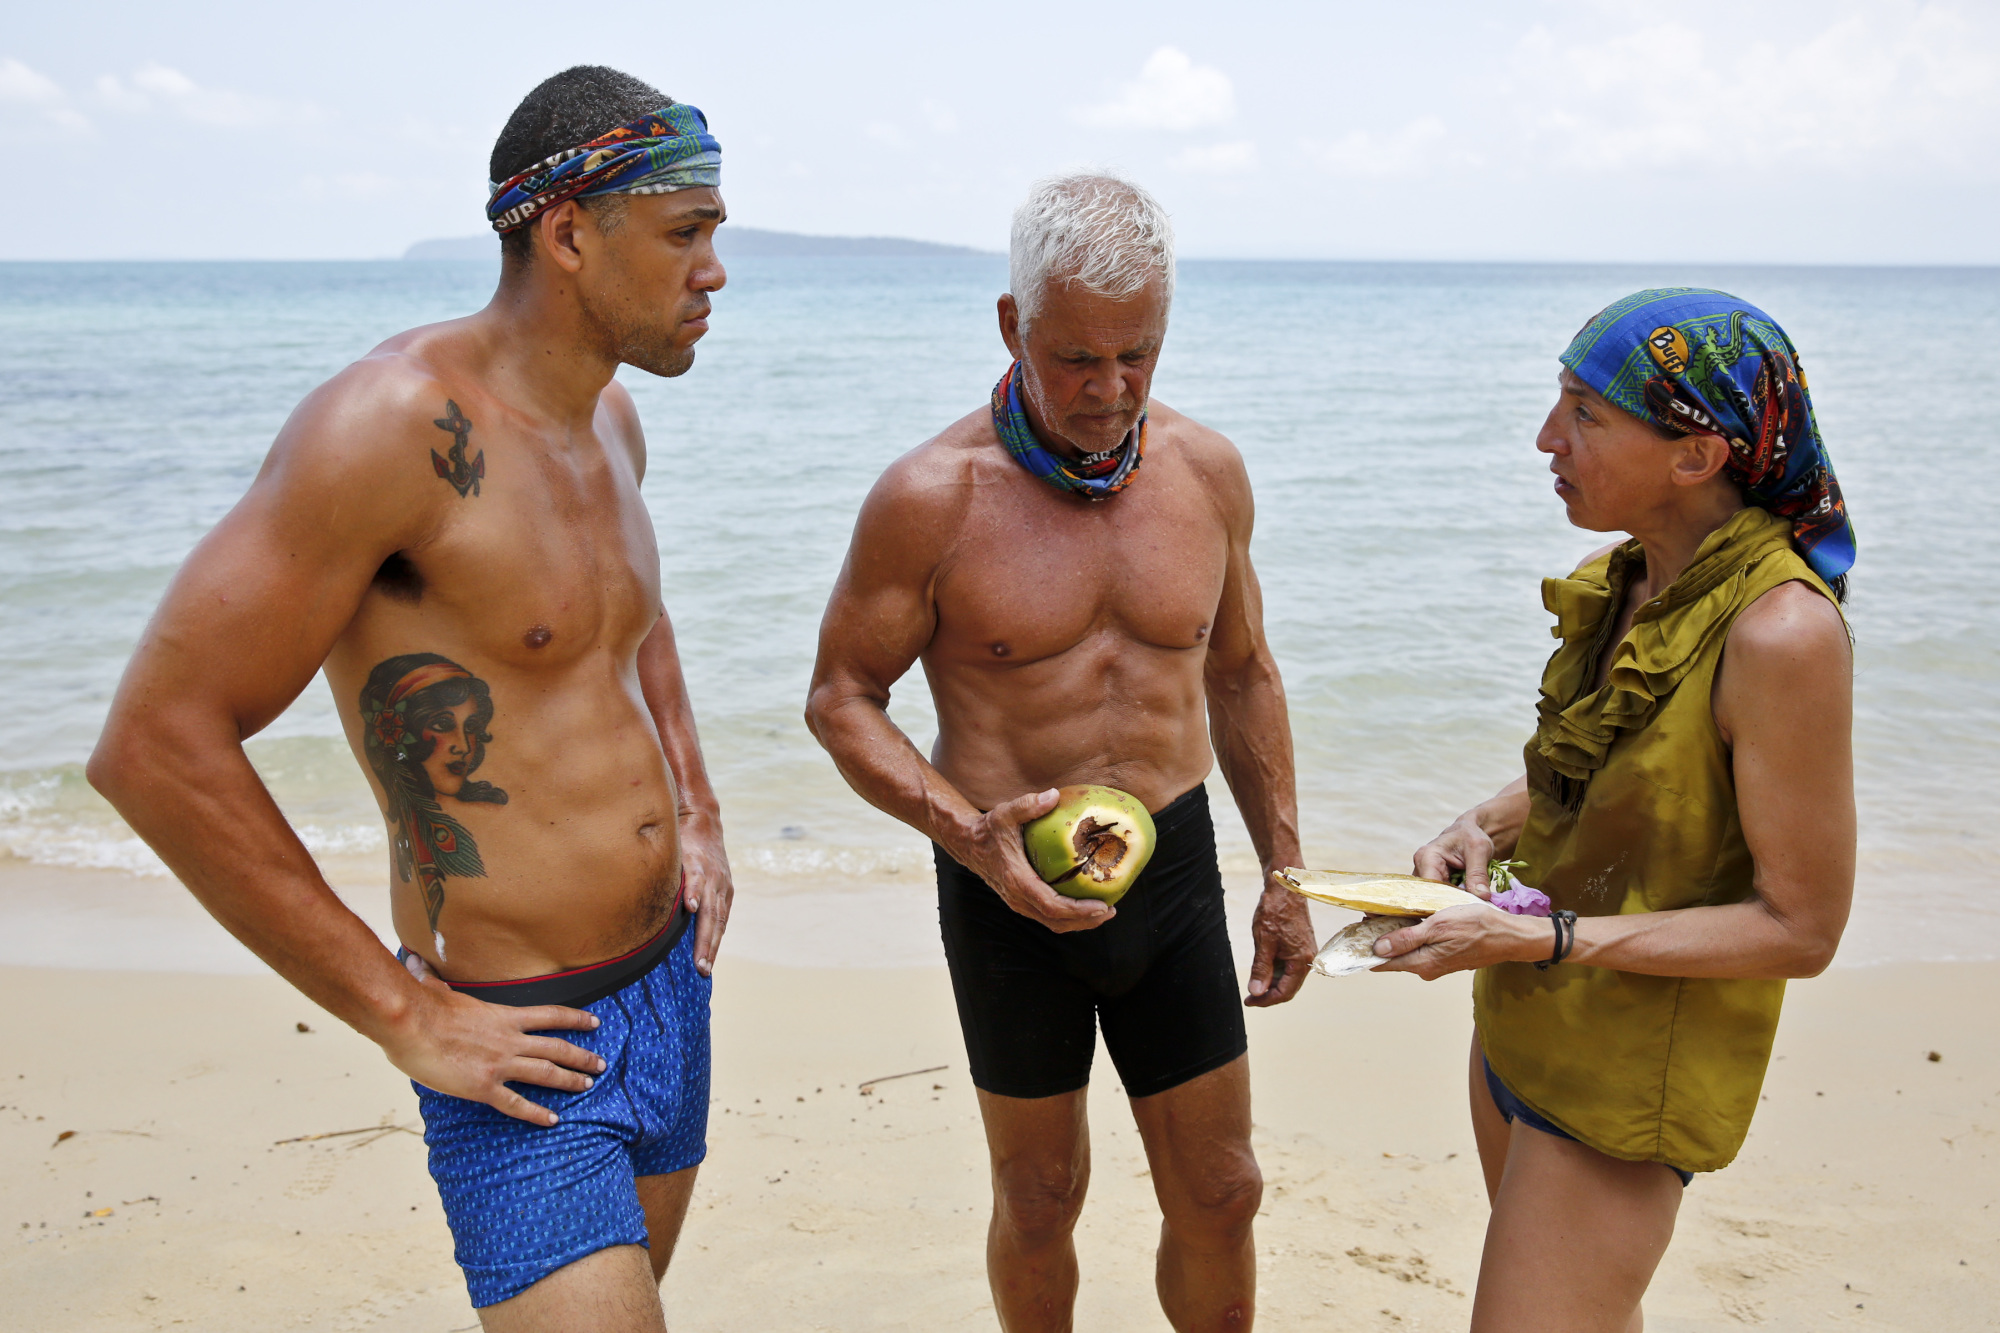 """""""Kindergarten Camp"""" -- Peter Baggenstos, Joseph Del Campo and Debbie Wanner during the second episode of SURVIVOR KAOH: RONG -- Brains vs. Brawn vs. Beauty. The show airs, Wednesday, February 24 (8:00-9:00 PM, ET/PT) on the CBS Television Network. Photo: Monty Brinton /CBS Entertainment �©2016 CBS Broadcasting, Inc. All Rights. Reserved."""